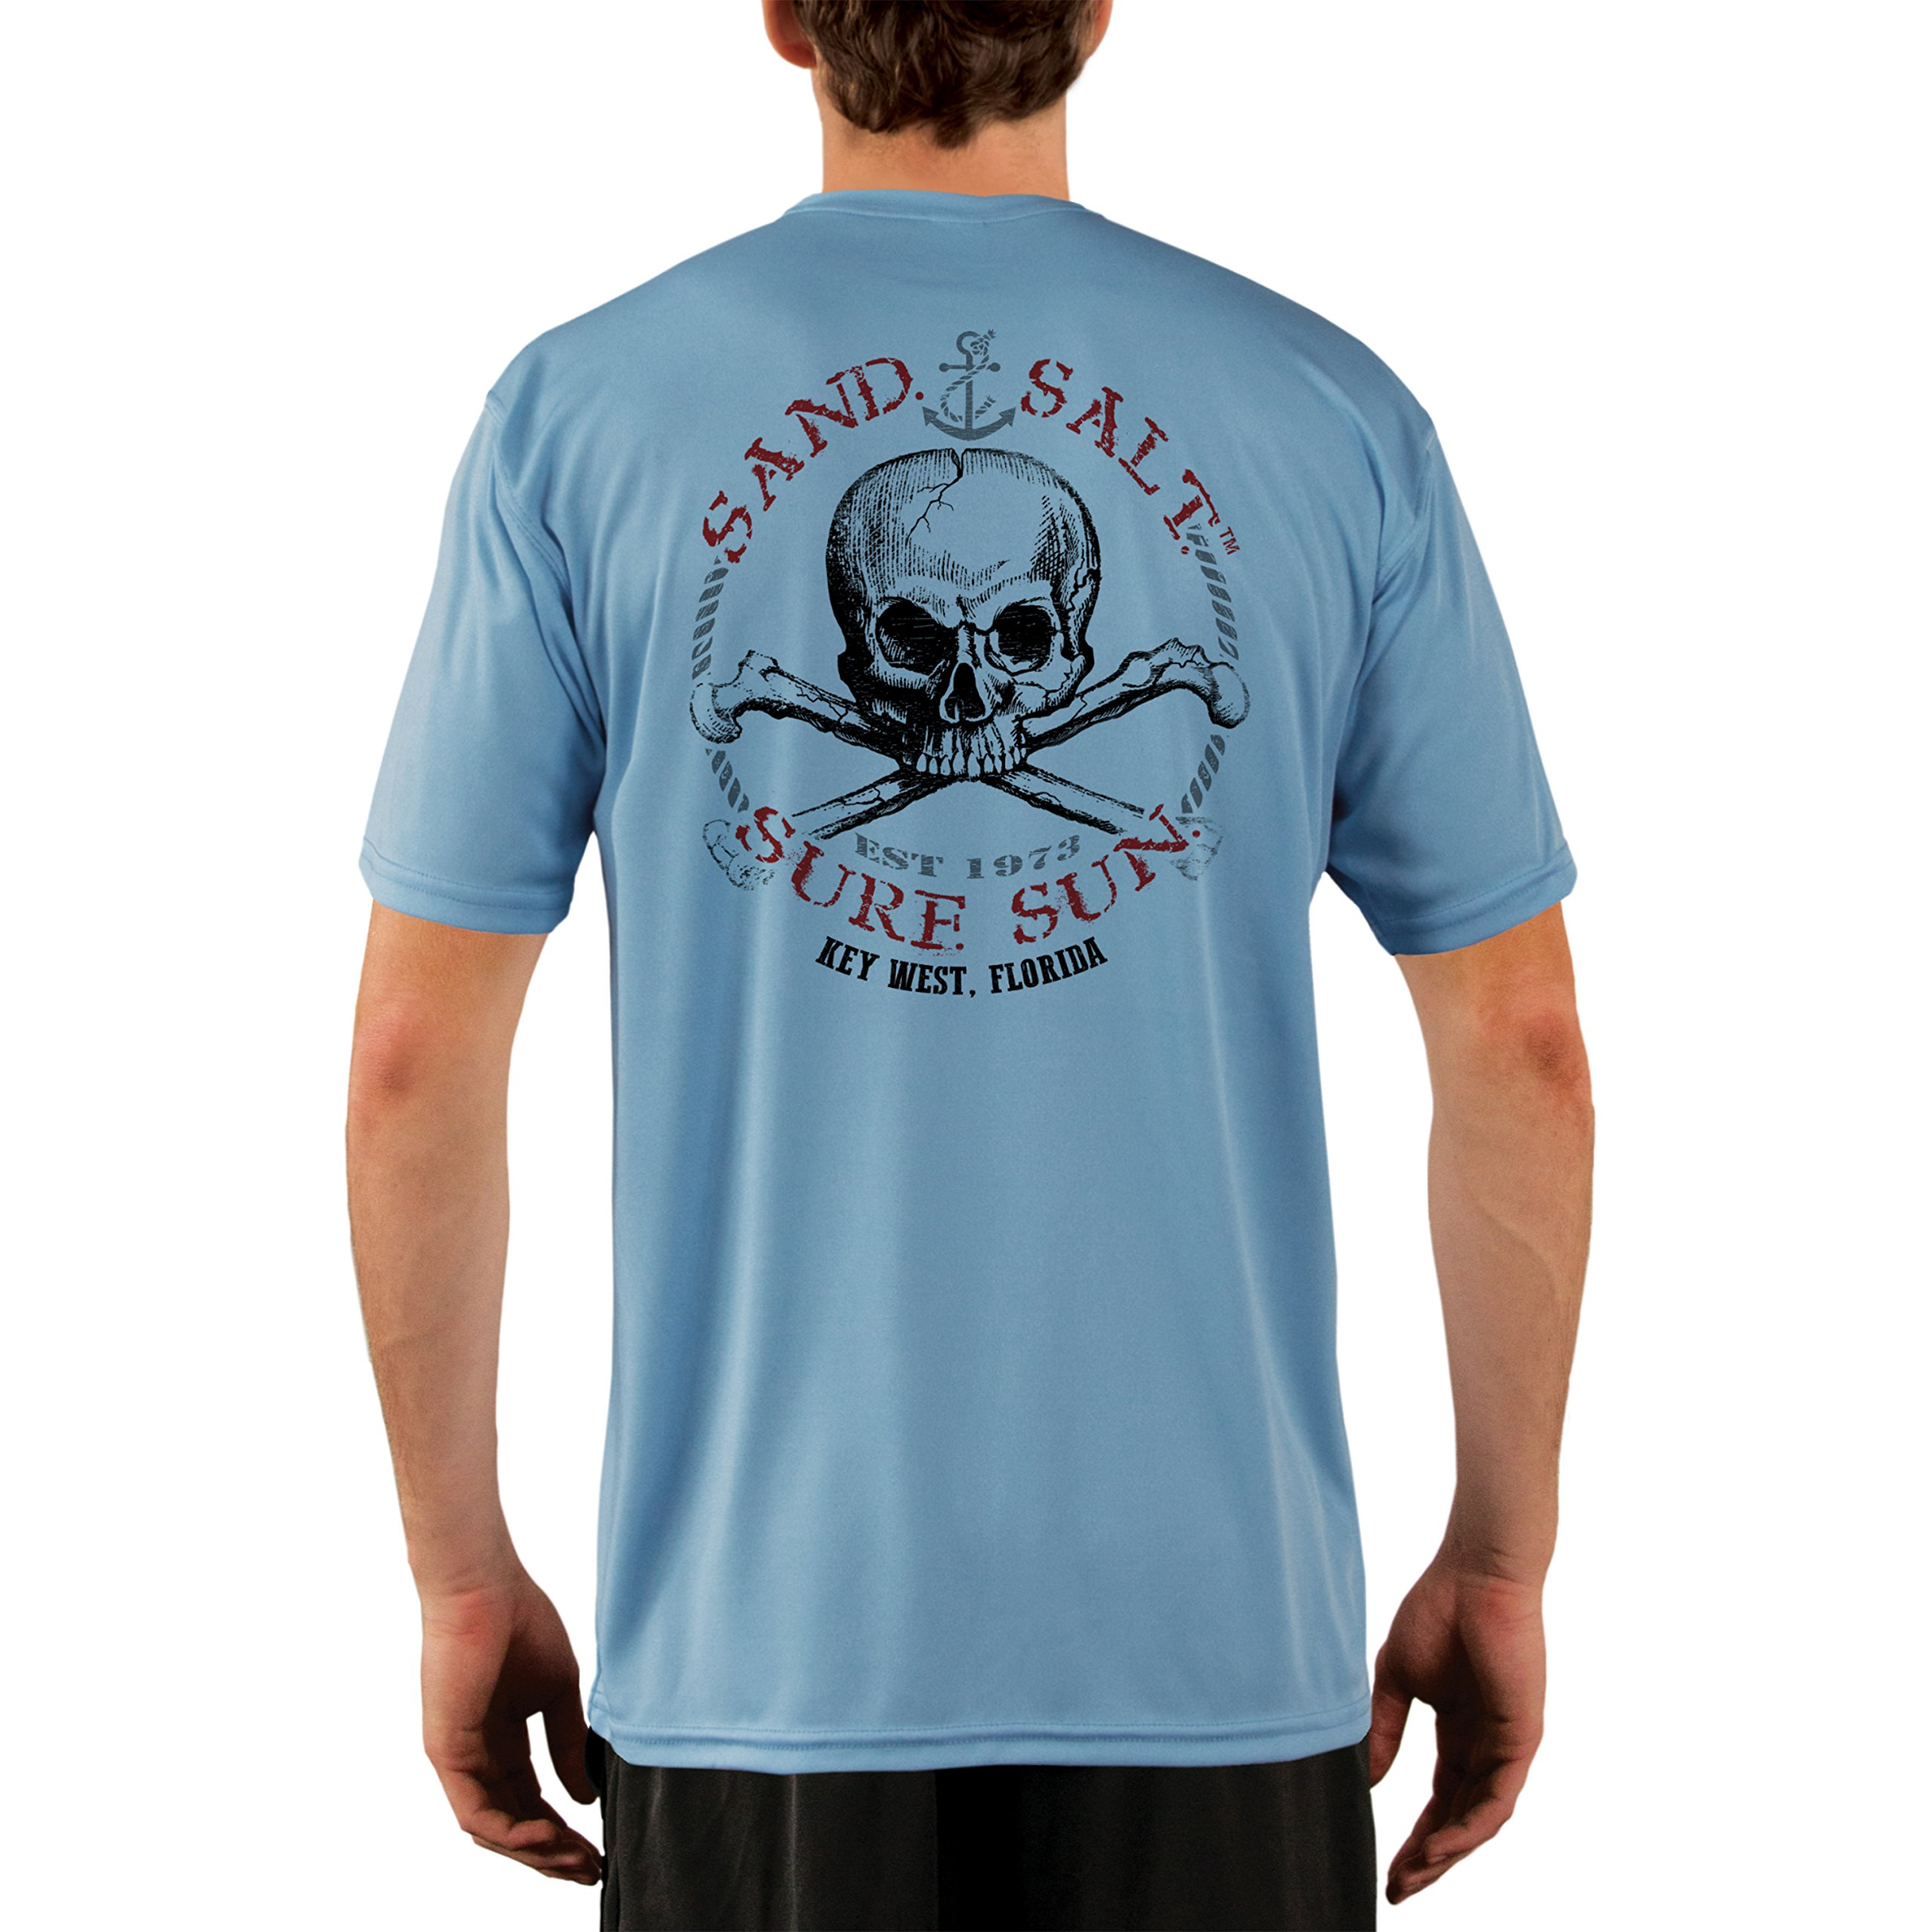 SAND.SALT.SURF.SUN. Key West Skull Men's UPF 50+ Short Sleeve T-Shirt Large Columbia Blue by SAND.SALT.SURF.SUN.